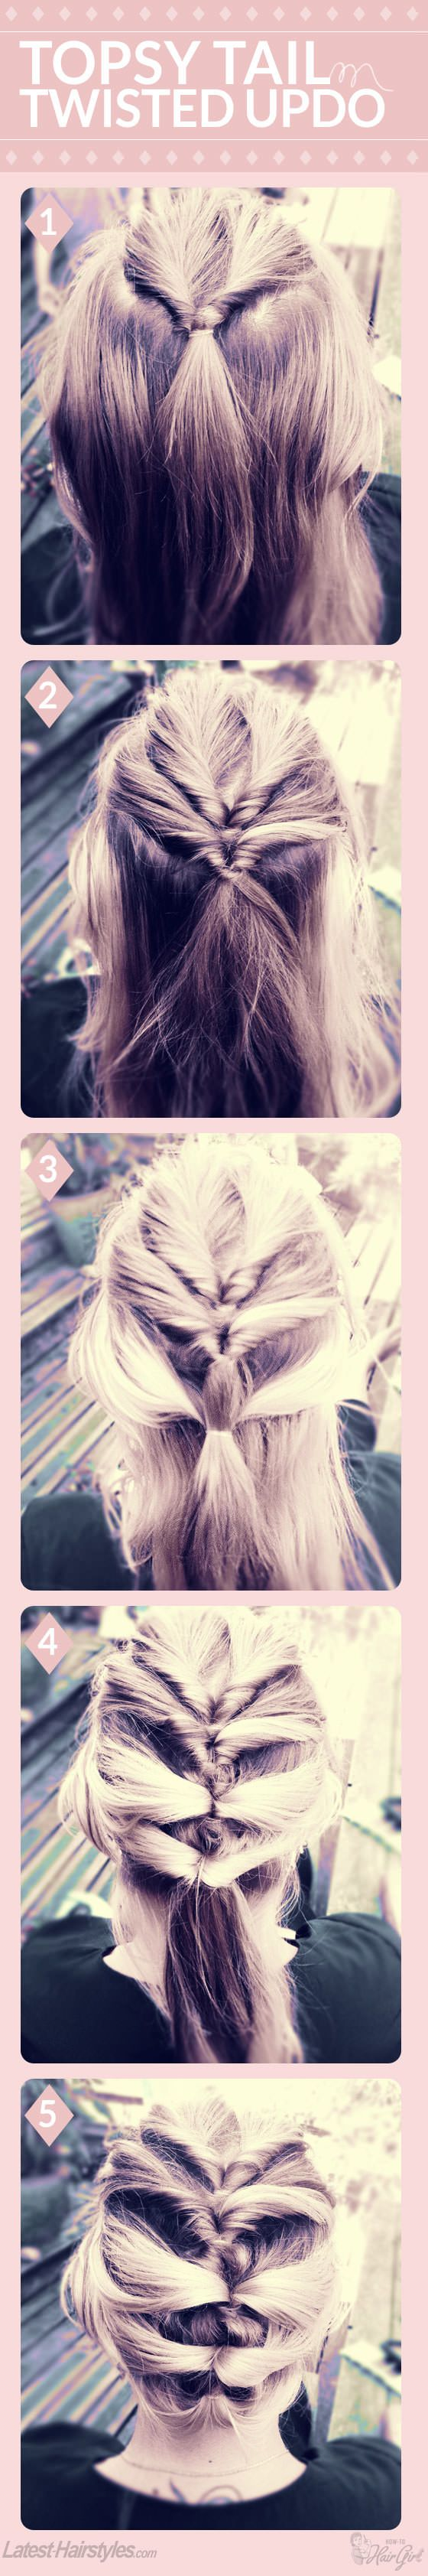 DIY Topsy Tail Twisted Updo Pictures, Photos, and Images for Facebook, Tumblr, Pinterest, and Twitter